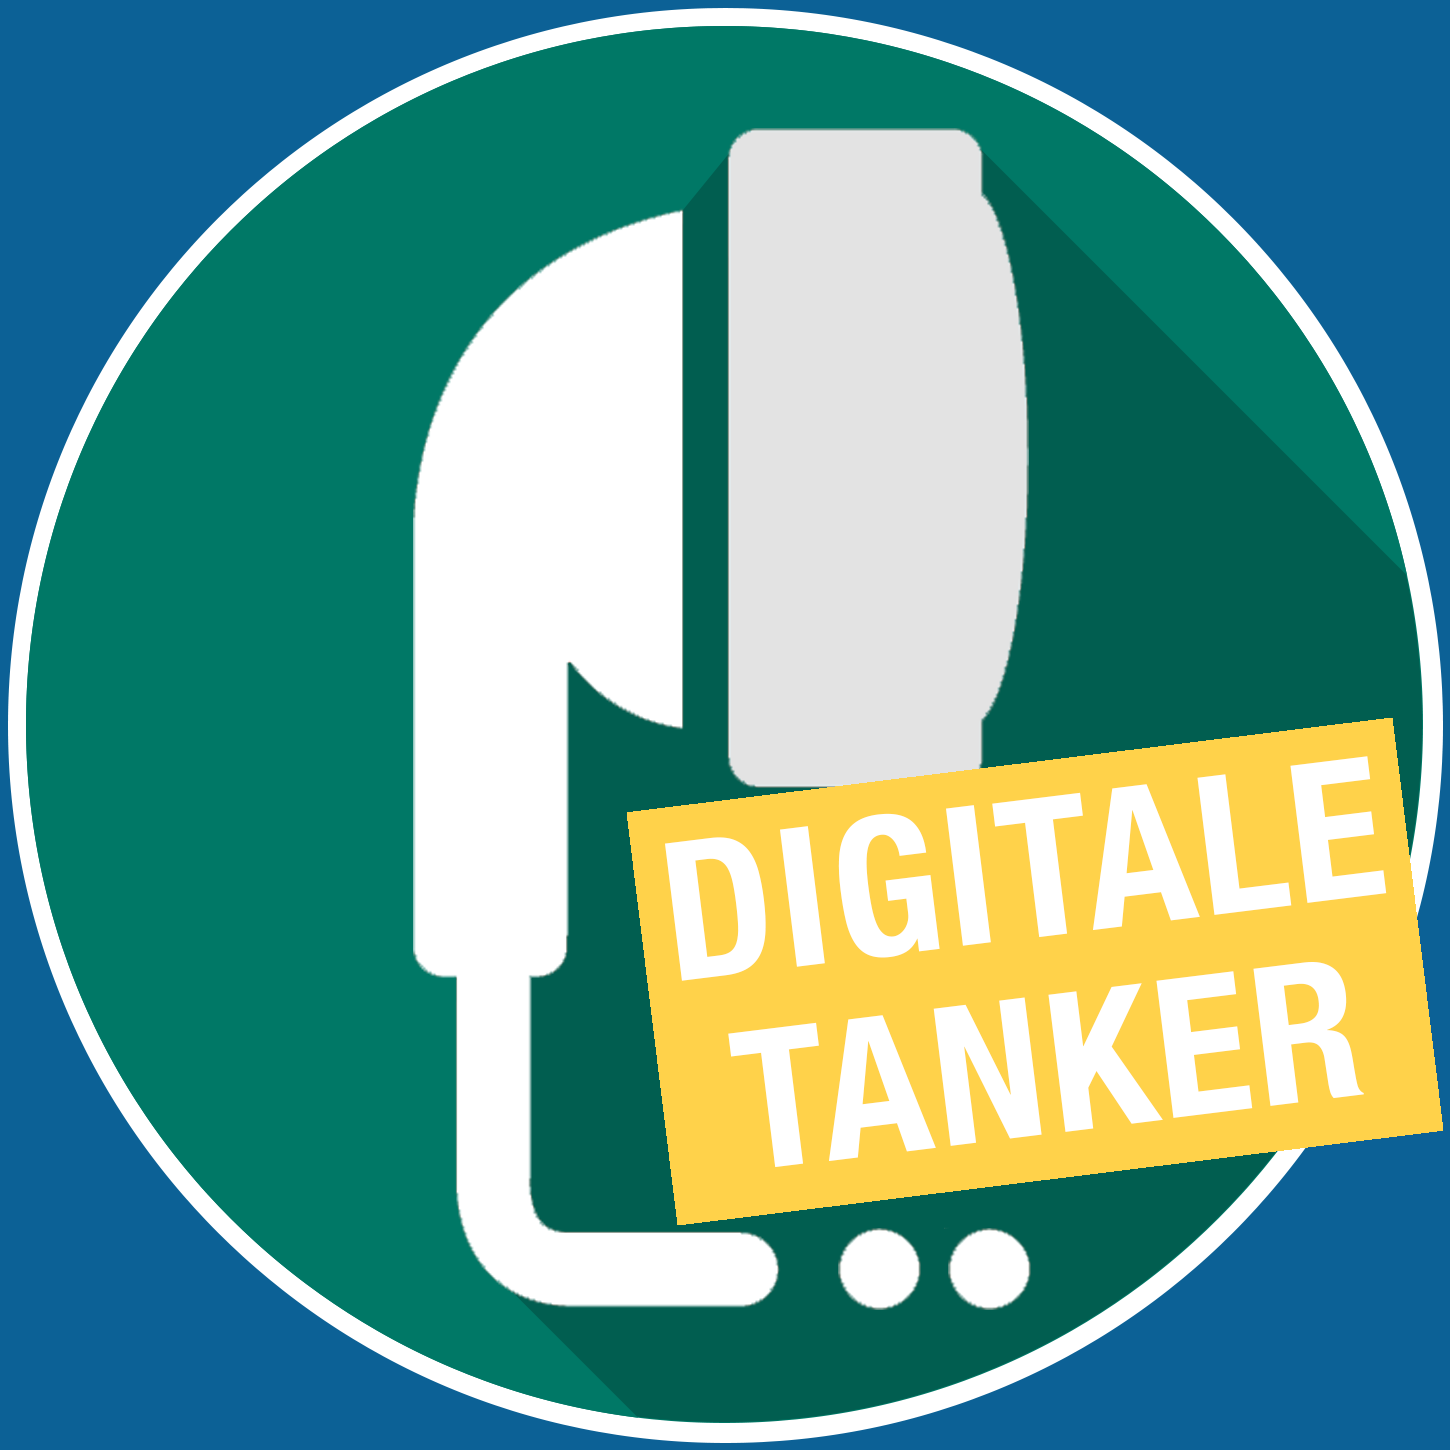 Digitale Tanker